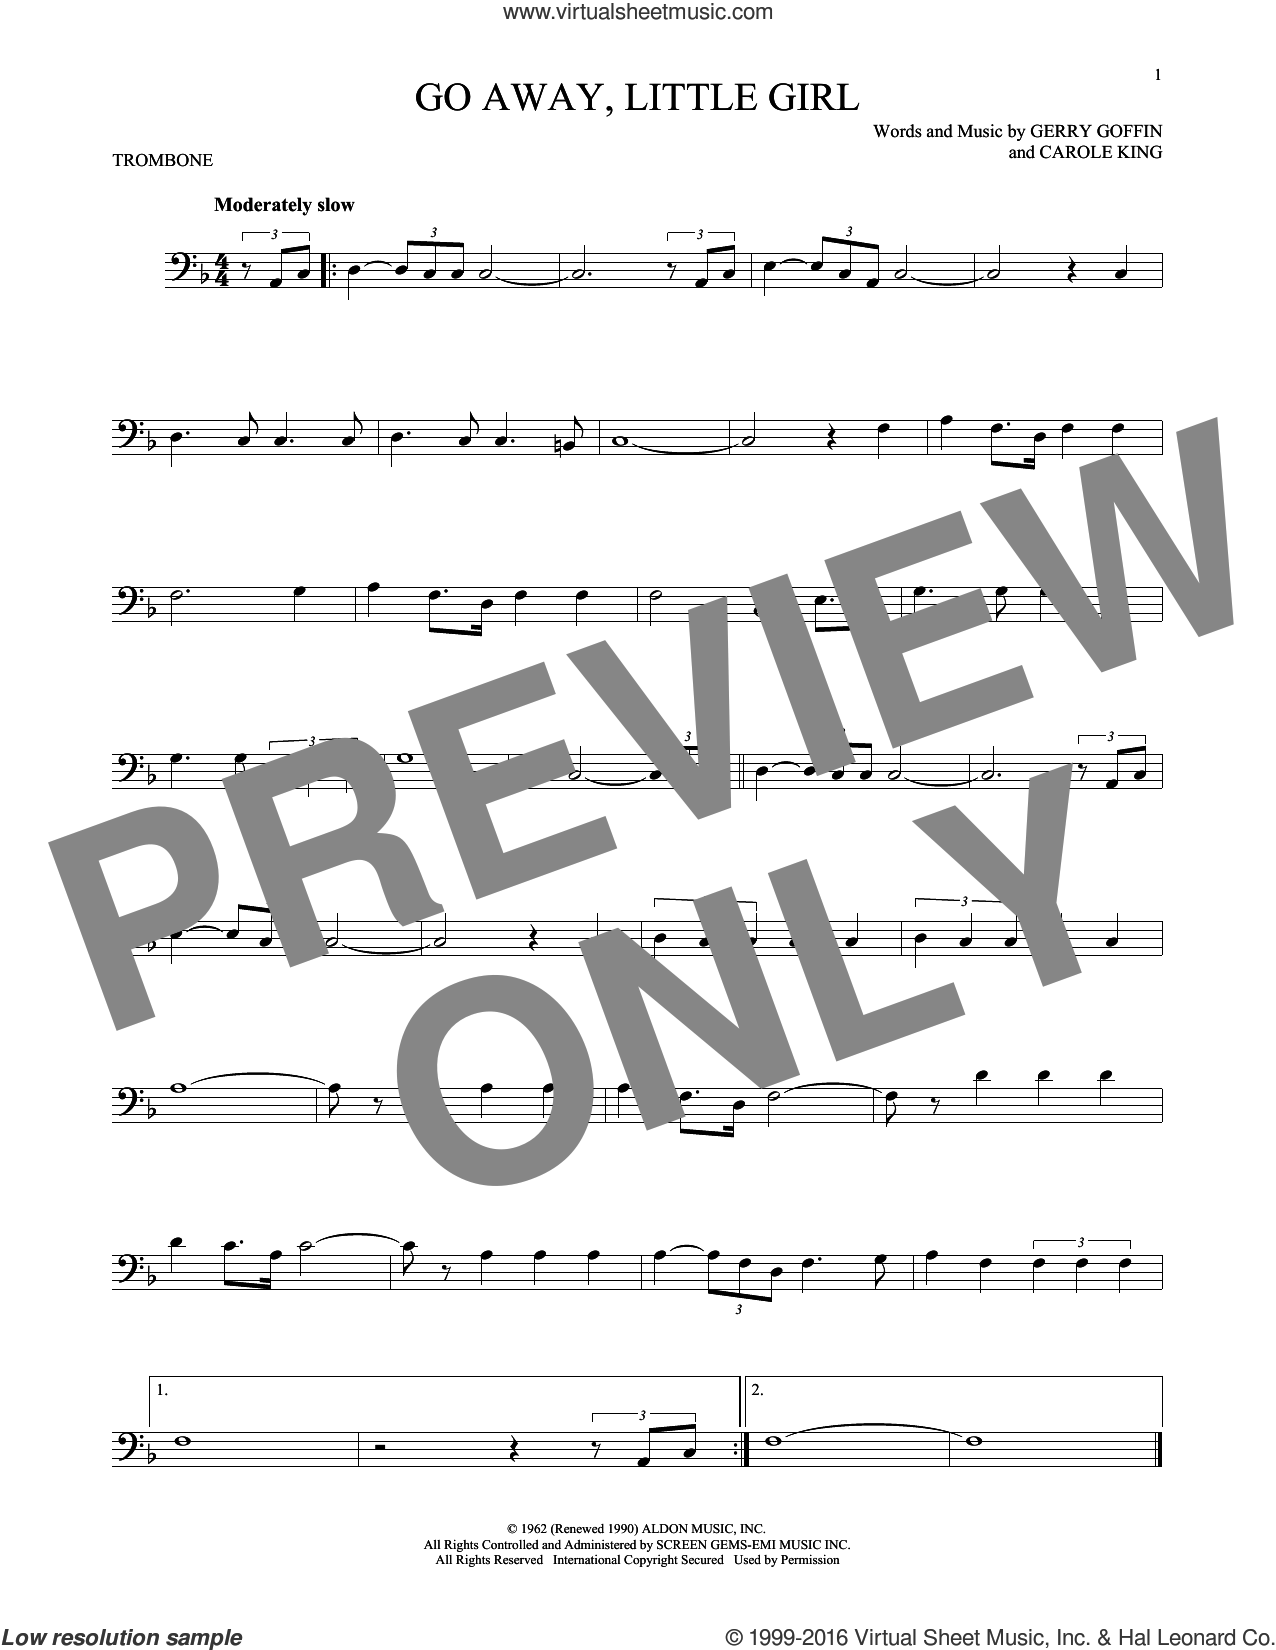 Go Away, Little Girl sheet music for trombone solo by Gerry Goffin, Donny Osmond and Carole King. Score Image Preview.